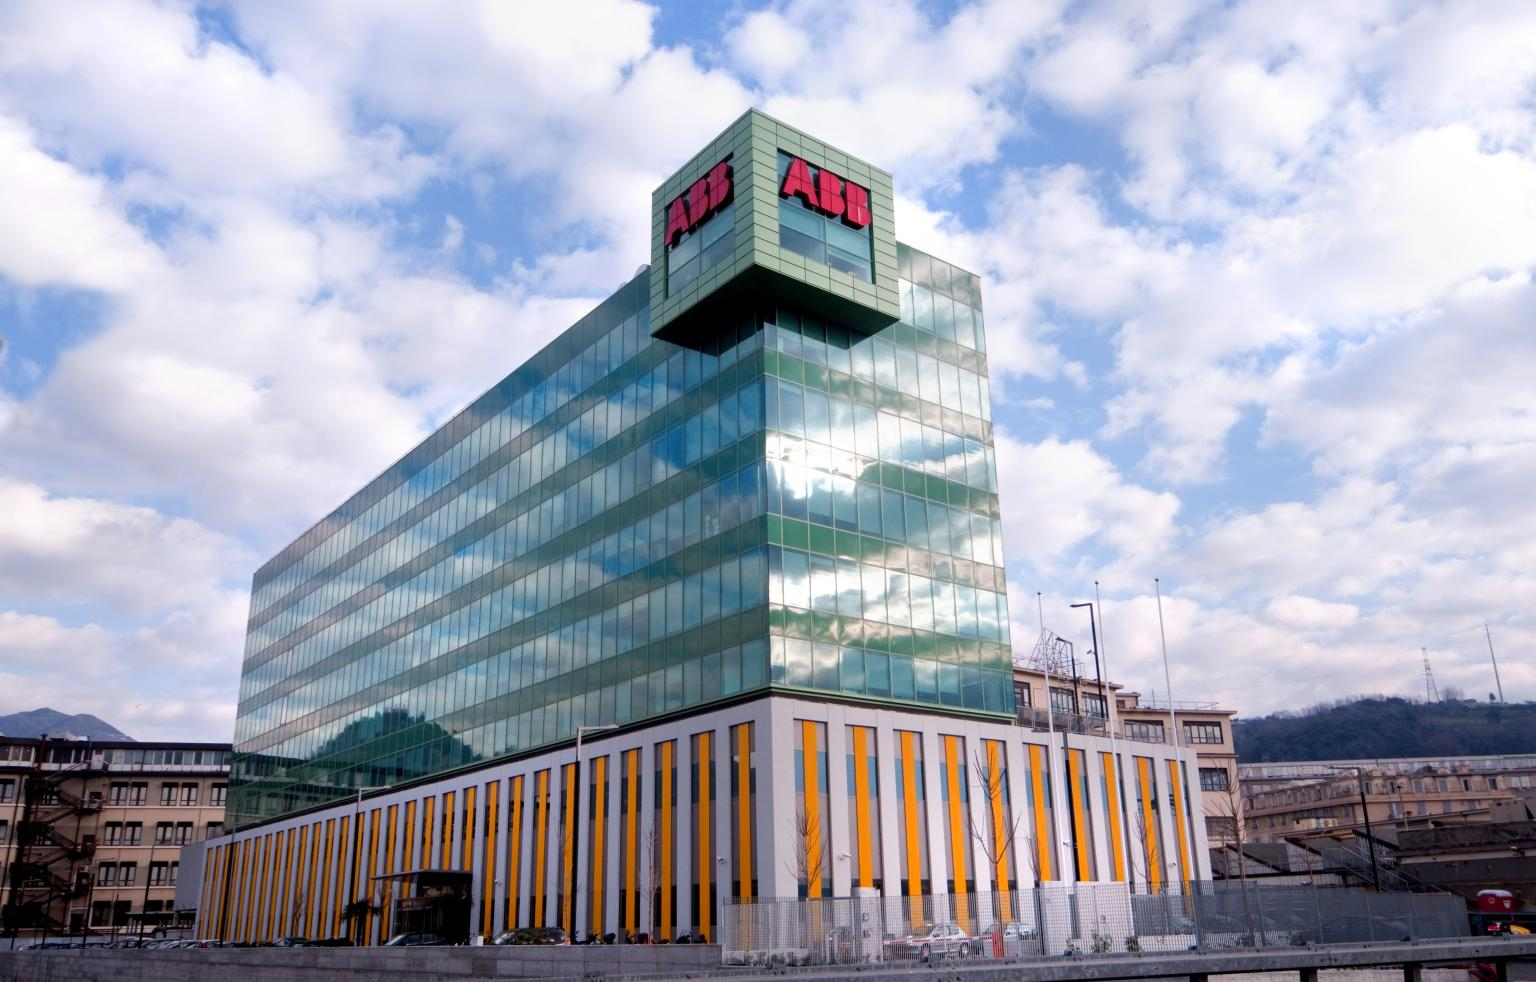 The new operations centre is at ABB's office in Genoa, Italy